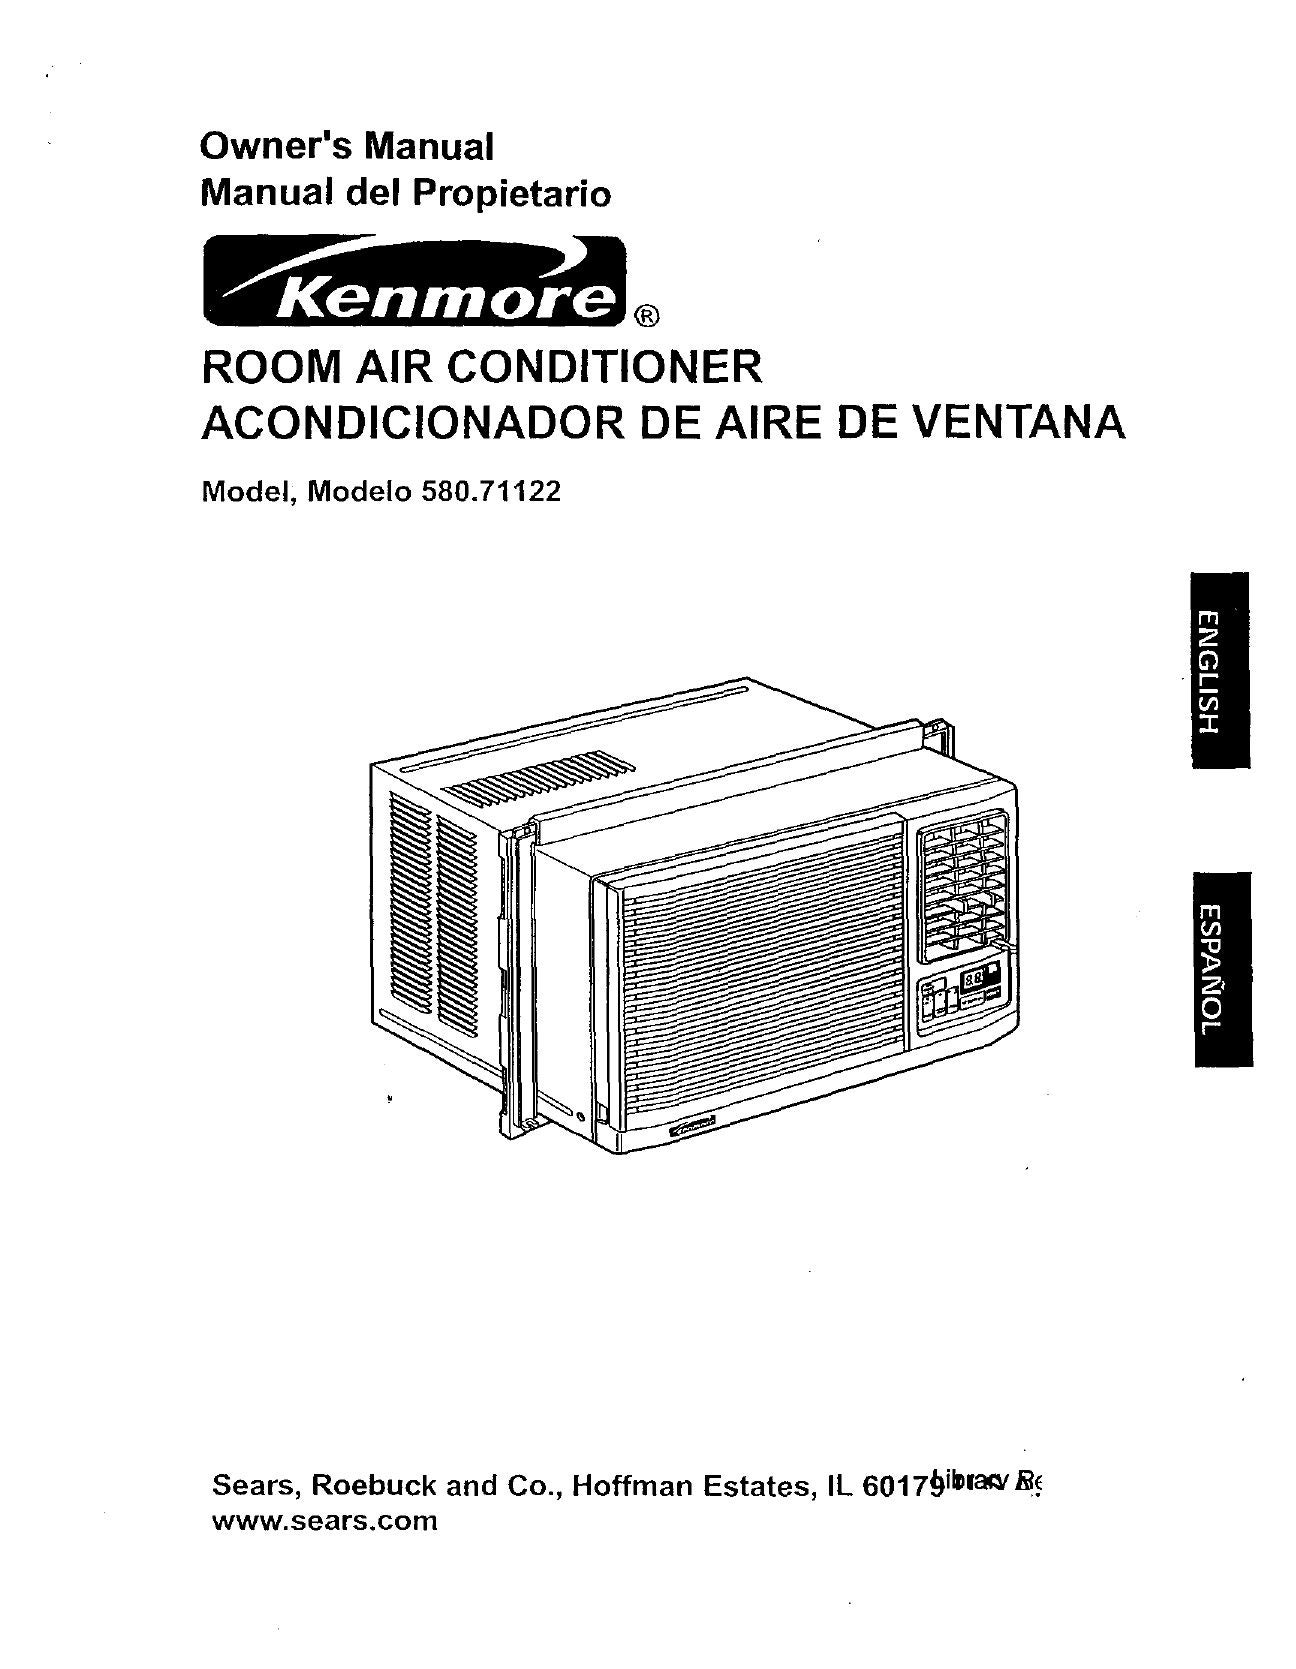 Kenmore Airconditioner By Donald Smith Issuu Ceiling Fan Wiring Diagram Sears Roebuck